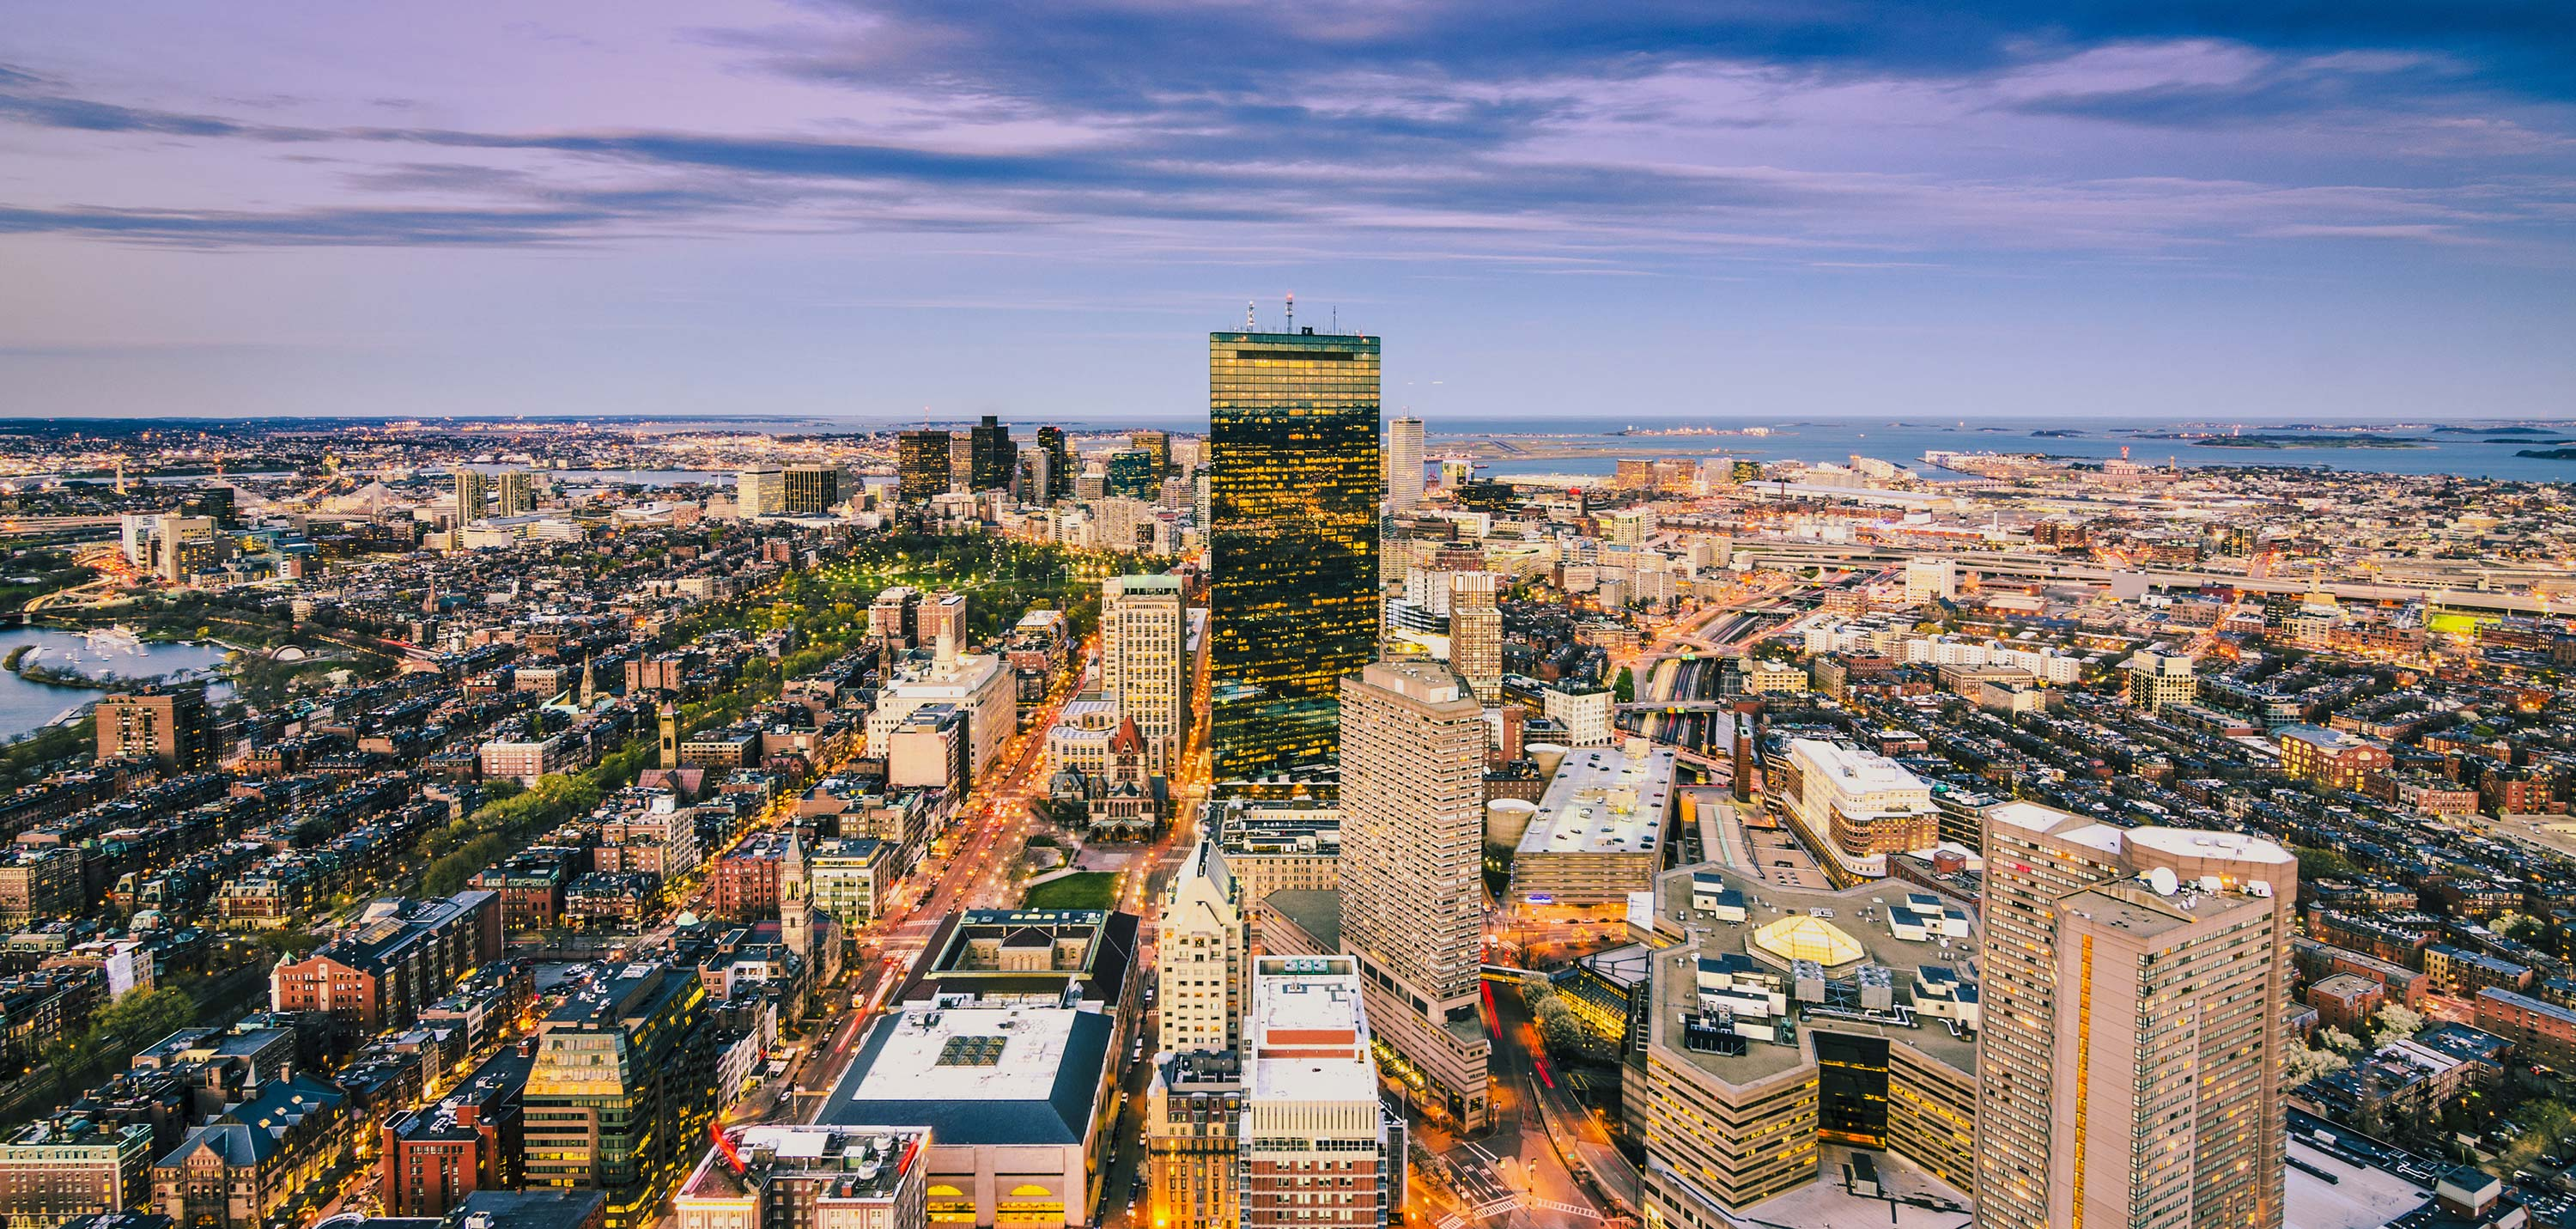 23 Aug The History Of Boston Construction And Roofing